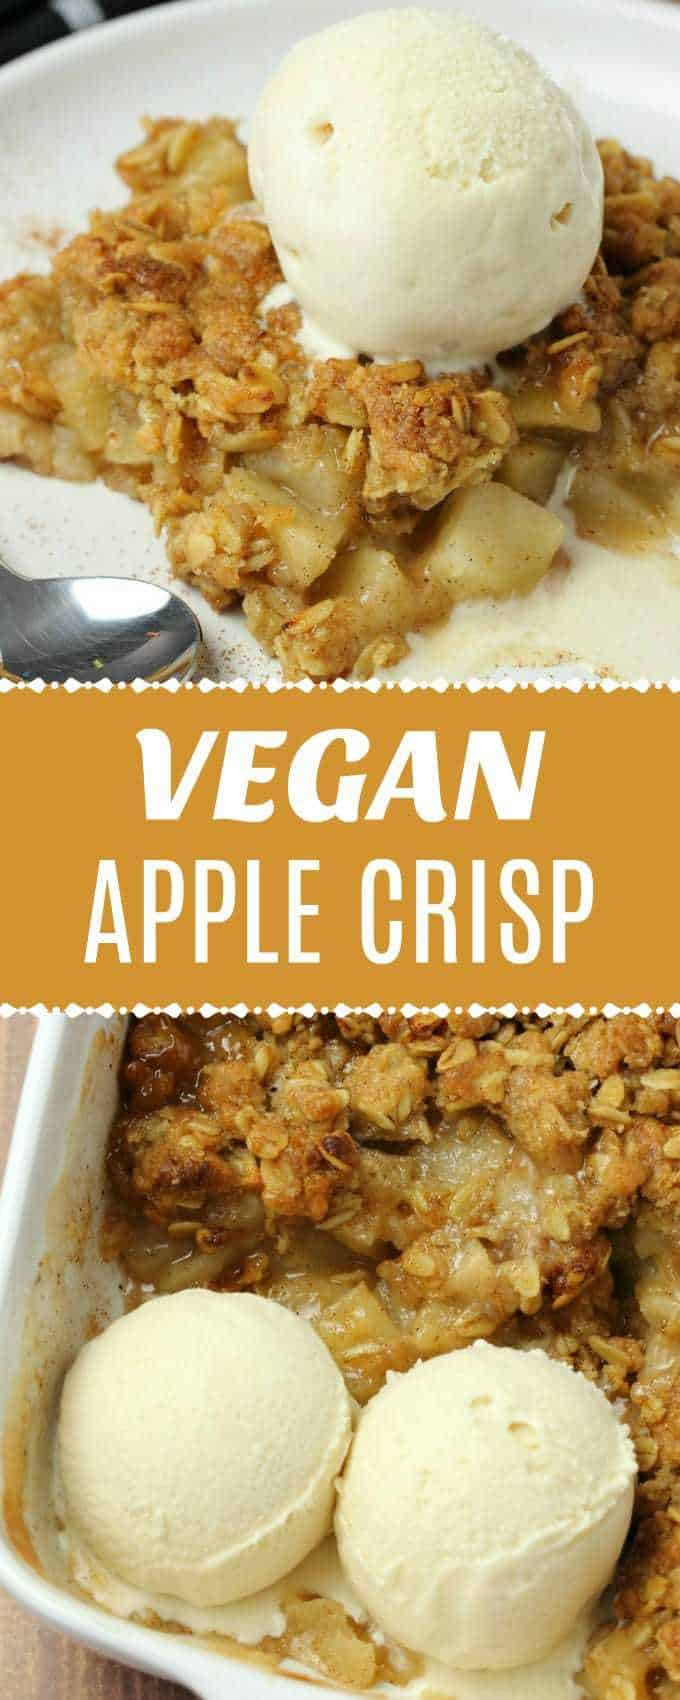 This vegan apple crisp is totally divine served warm with some vegan cream or vegan vanilla ice cream. It's deliciously flavorful and perfect for the holidays. | lovingitvegan.com